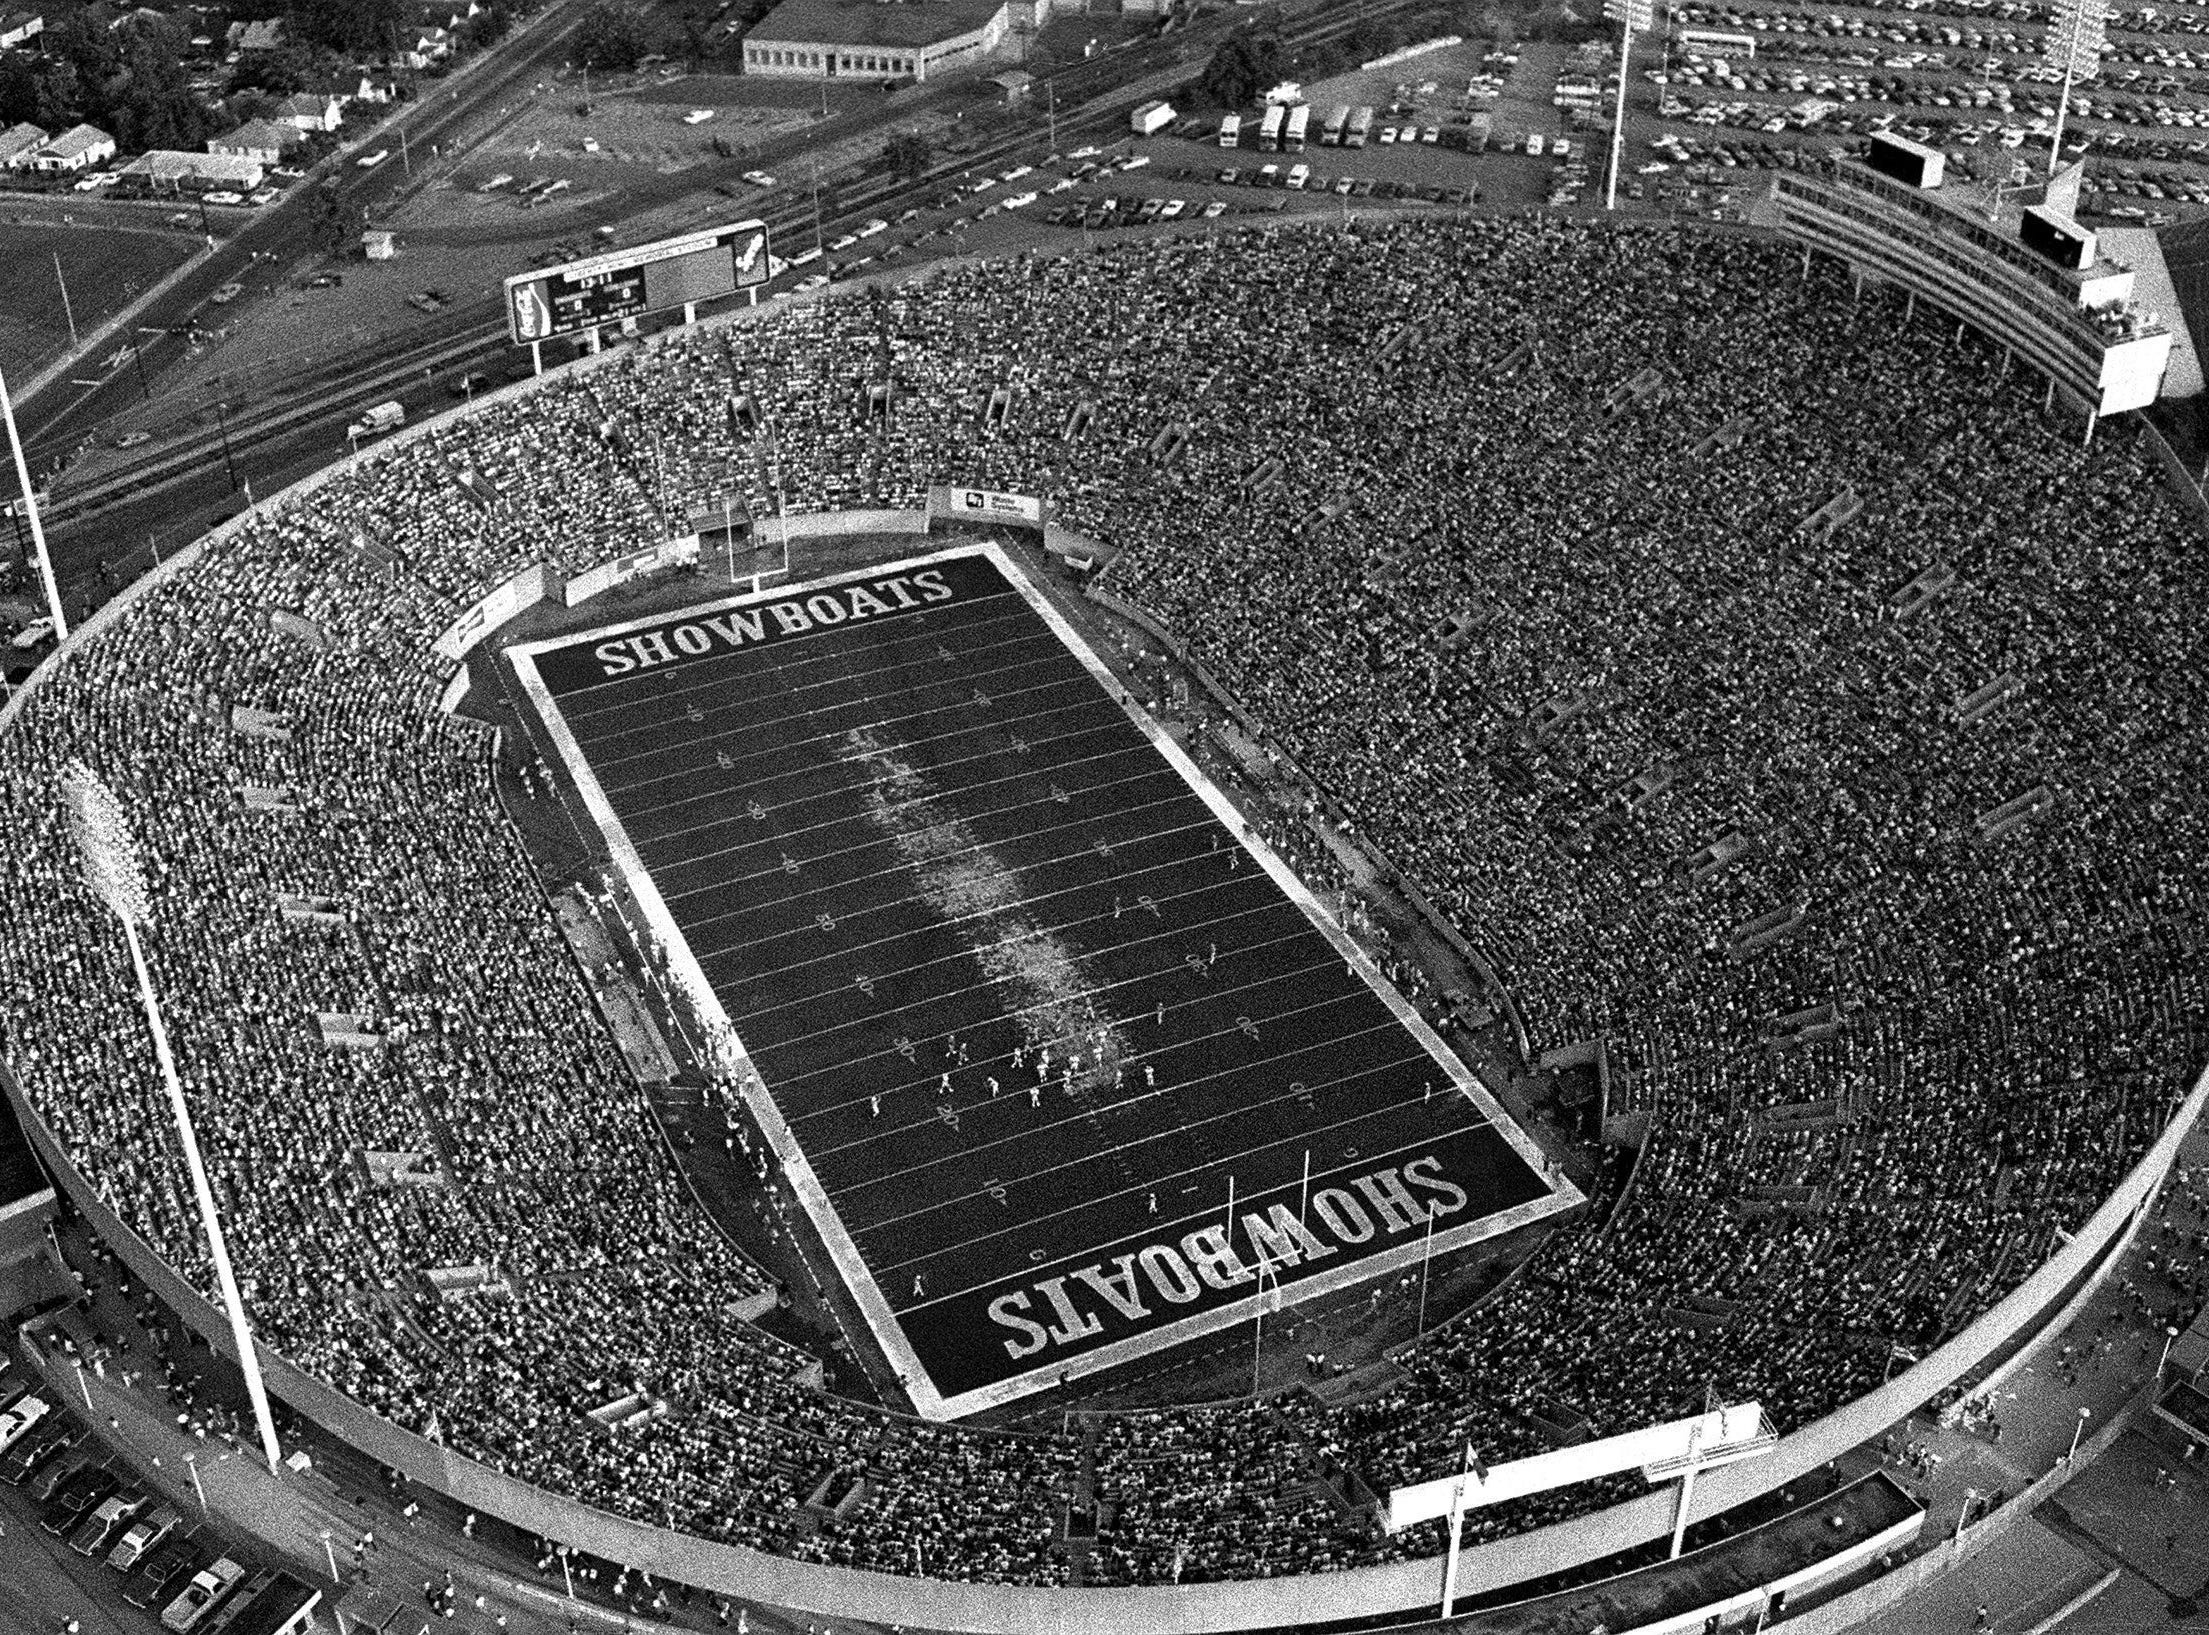 A sell out crowd of 50,079 (with 101 no-shows) looks on as the Memphis Showboats play the Birmingham Stallions on 16 Jun 1984 at Liberty Bowl Memorial Stadium. The game was the Showboats final home game of the season and the 35-20 Birmingham win left the Showboats with a 7-10 record heading into the season finale in Houston. The crowd was only the second sellout in USFL history. Pittsburgh sold out a game against Birmingham earlier in the season.